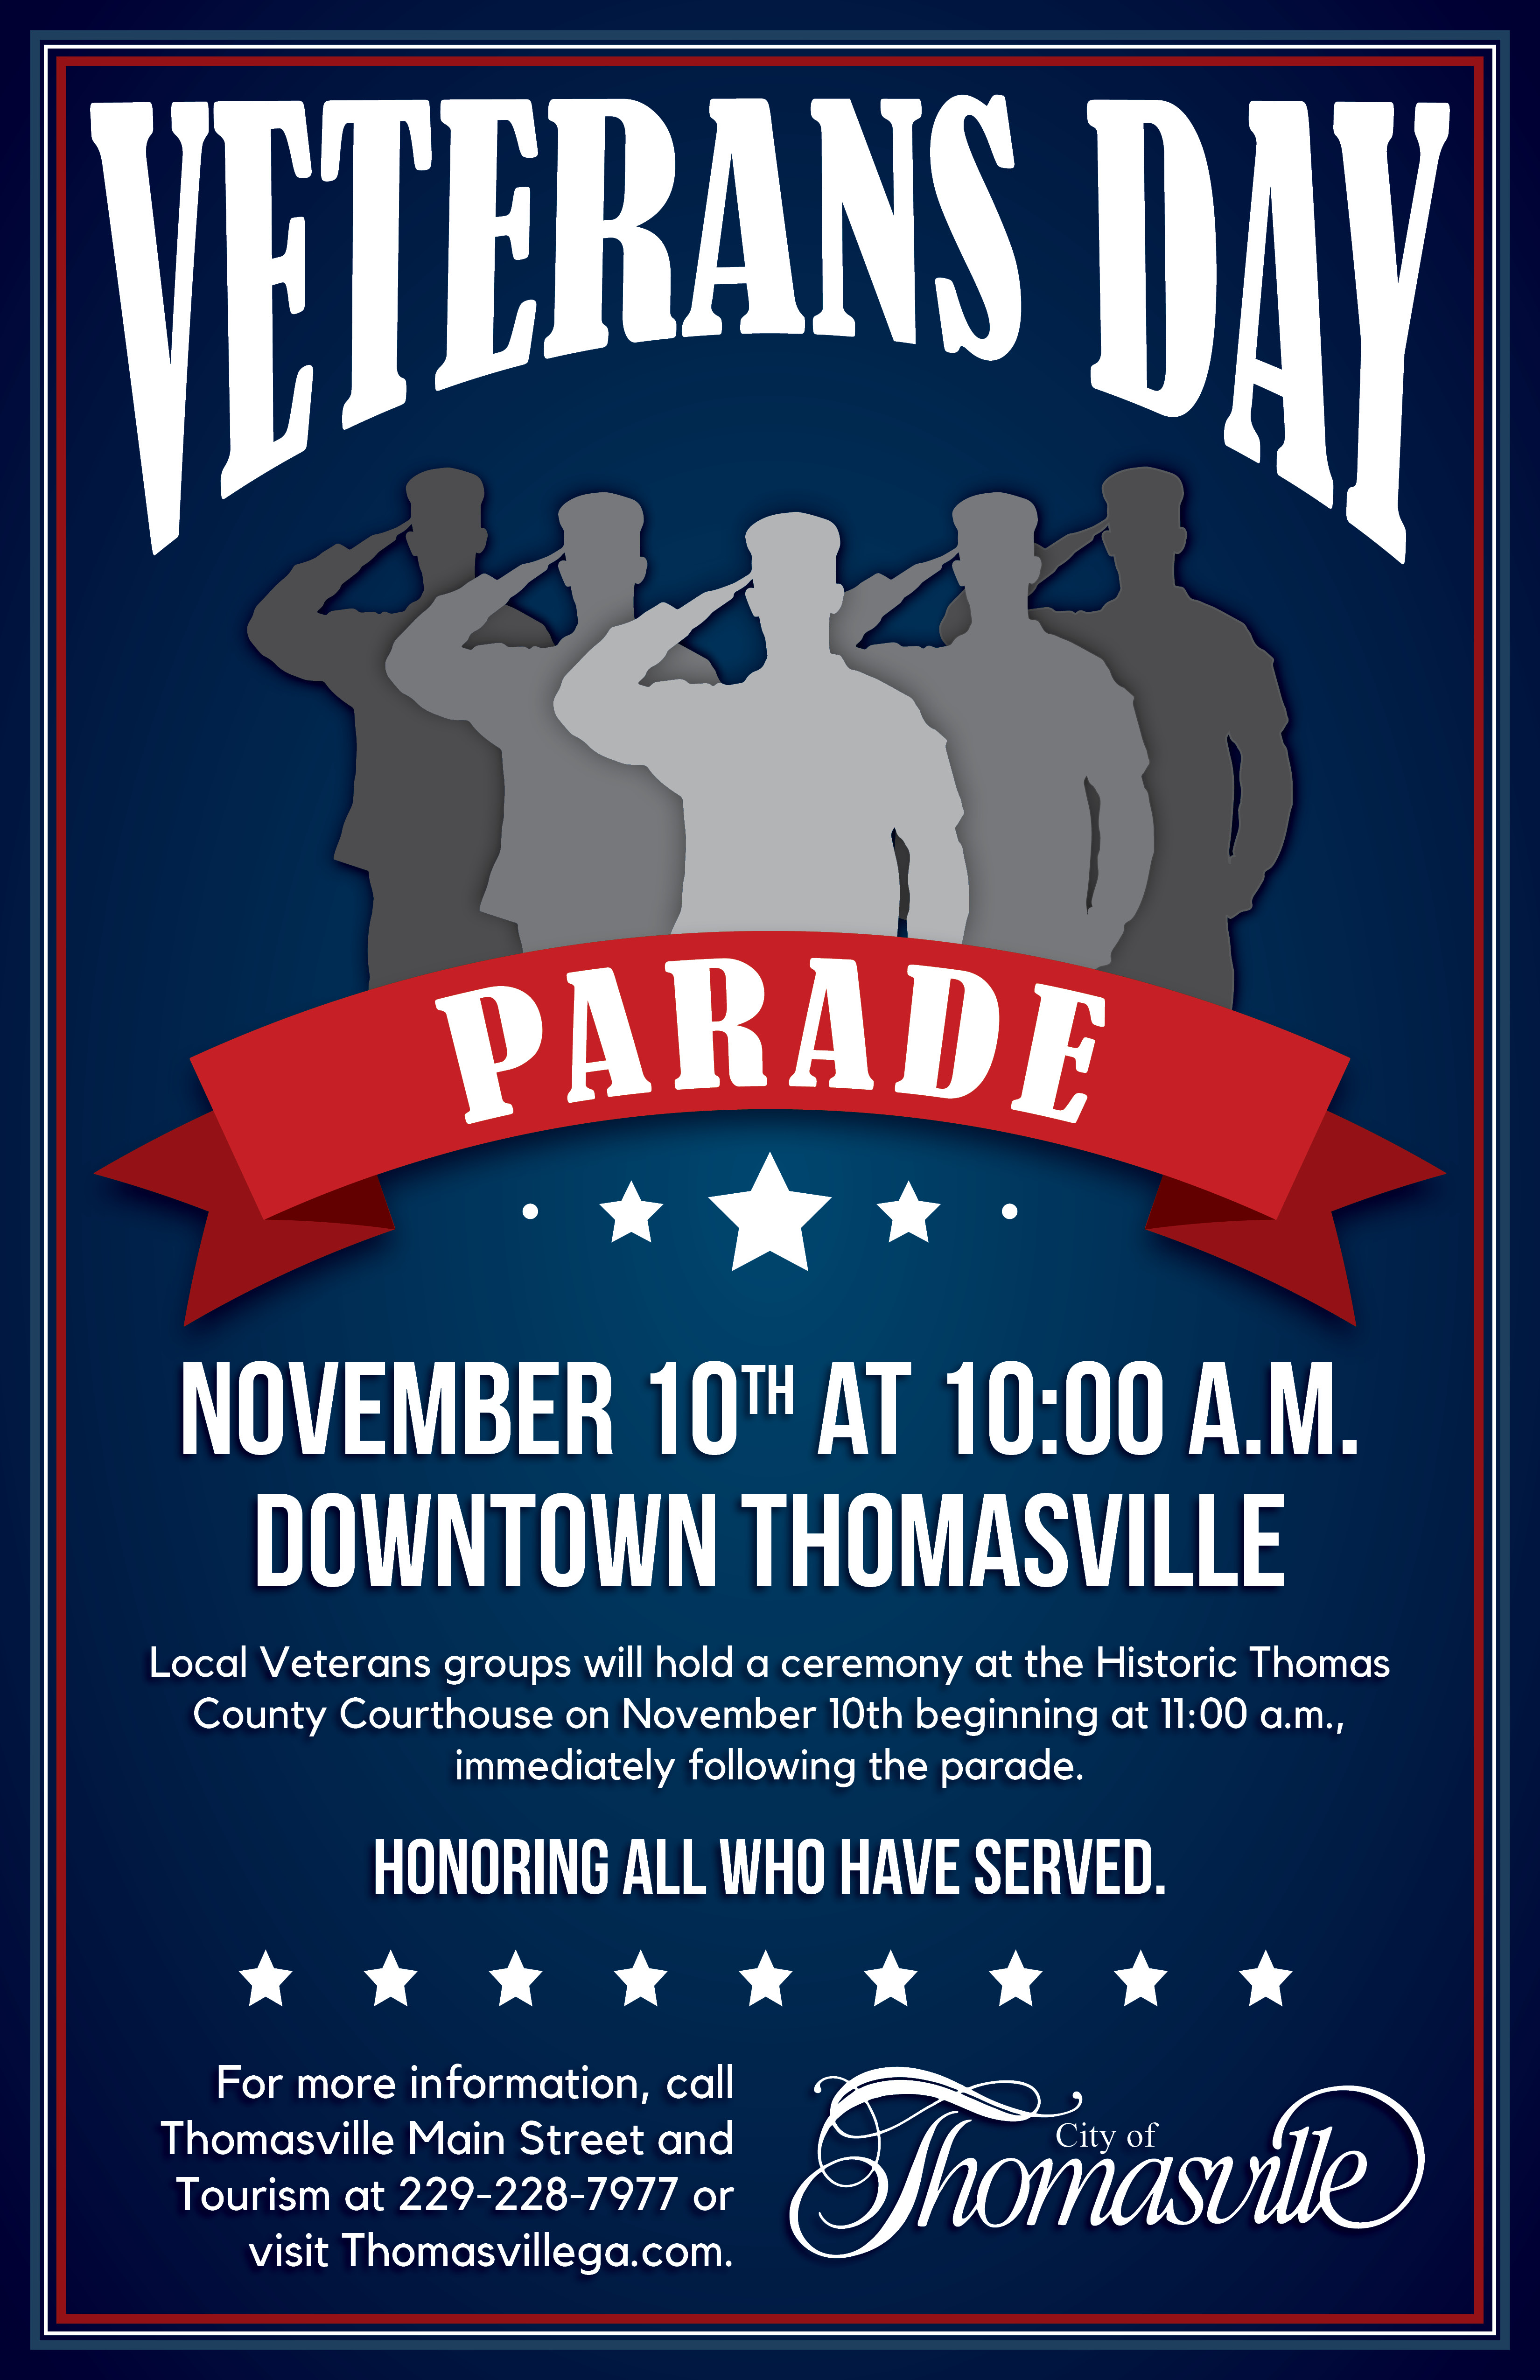 Veterans Day Parade Event Photo